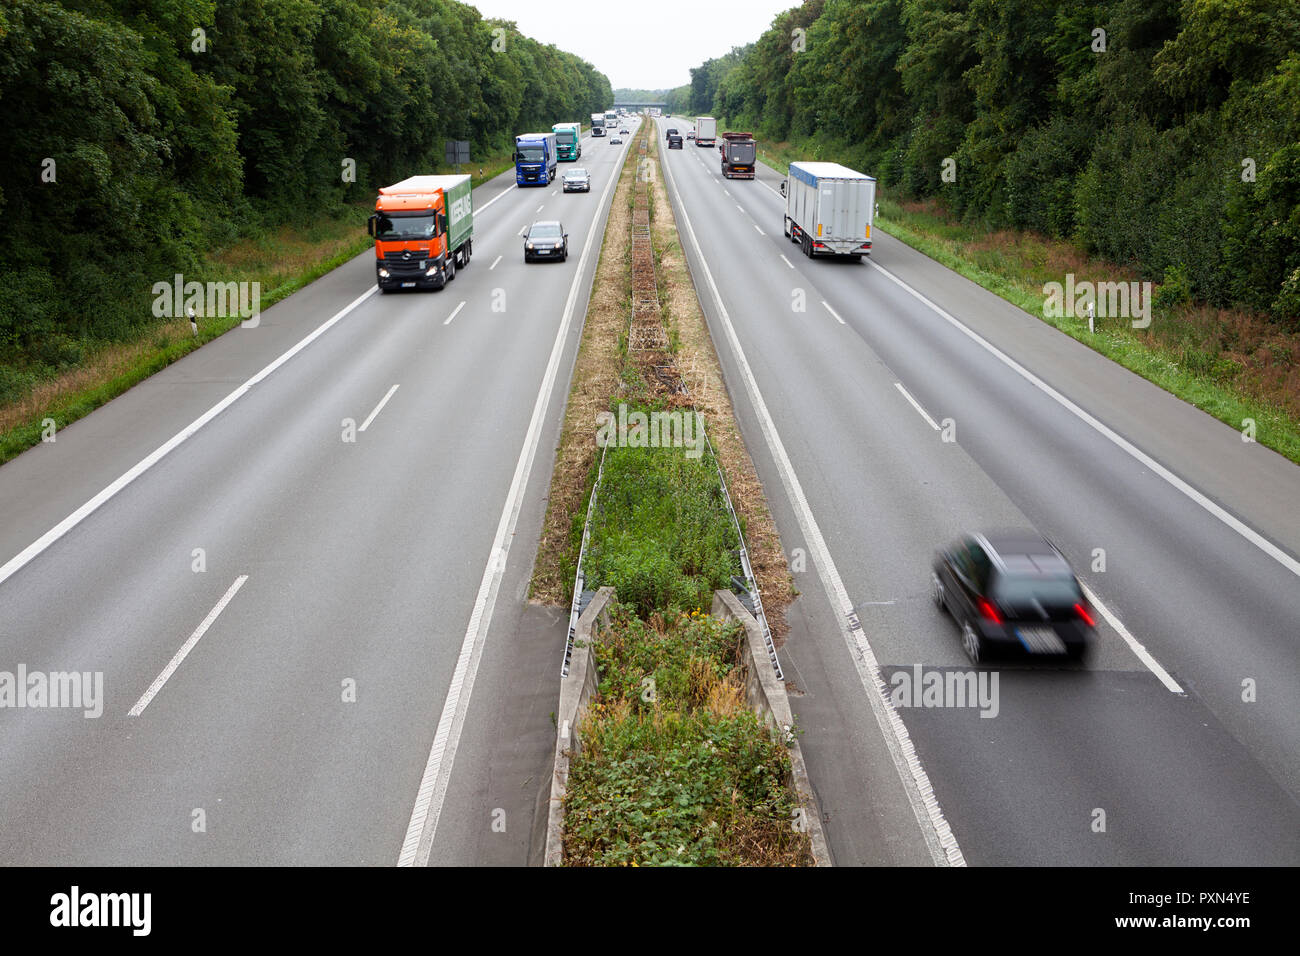 Highway 1 near Ascheberg, Münsterland, North Rhine-Westphalia, Germany, Europe - Stock Image